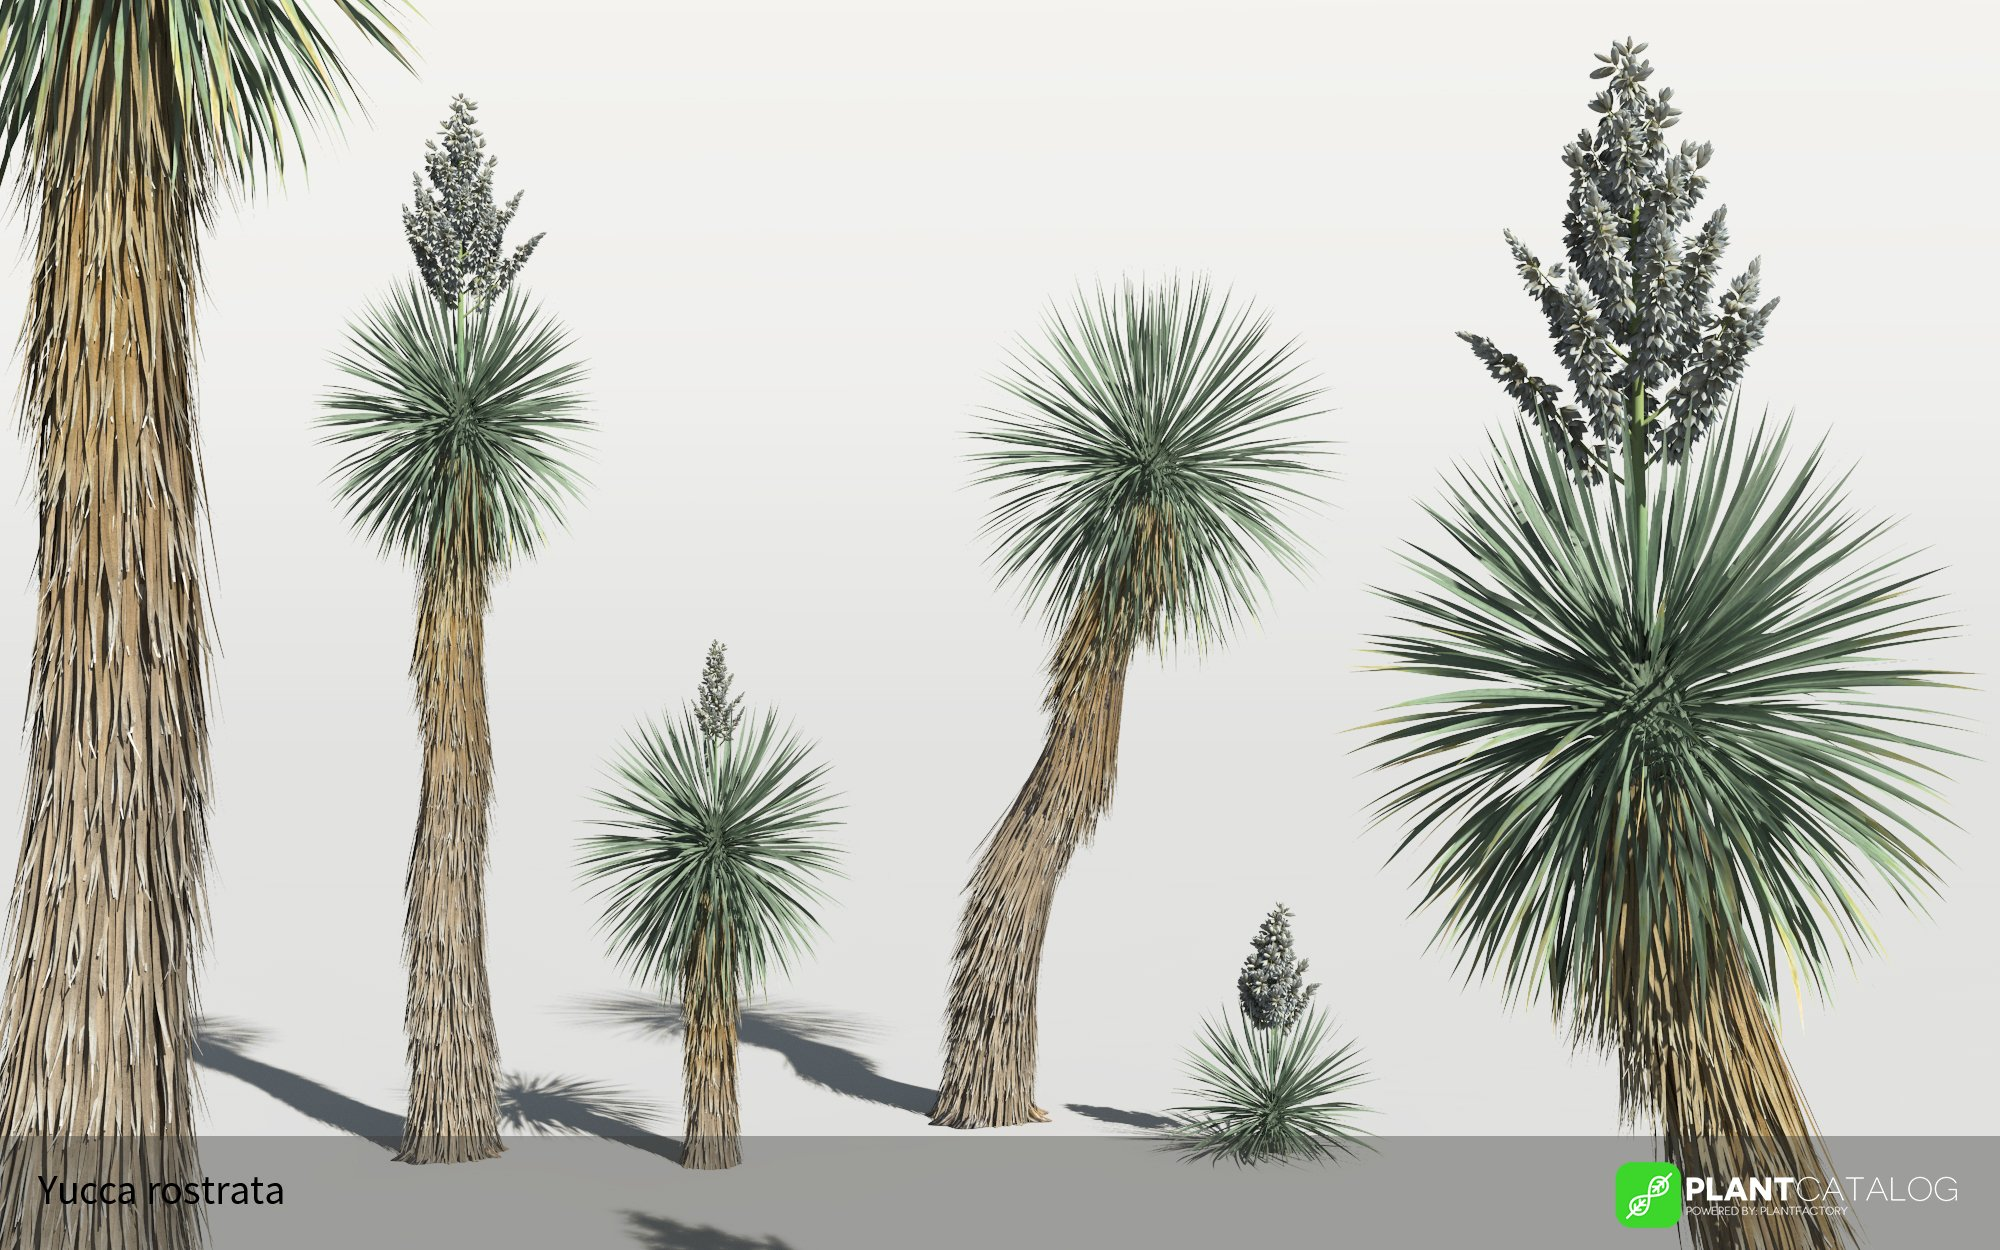 3D model of the Beaked yucca - Yucca rostrata - from the PlantCatalog, rendered in VUE